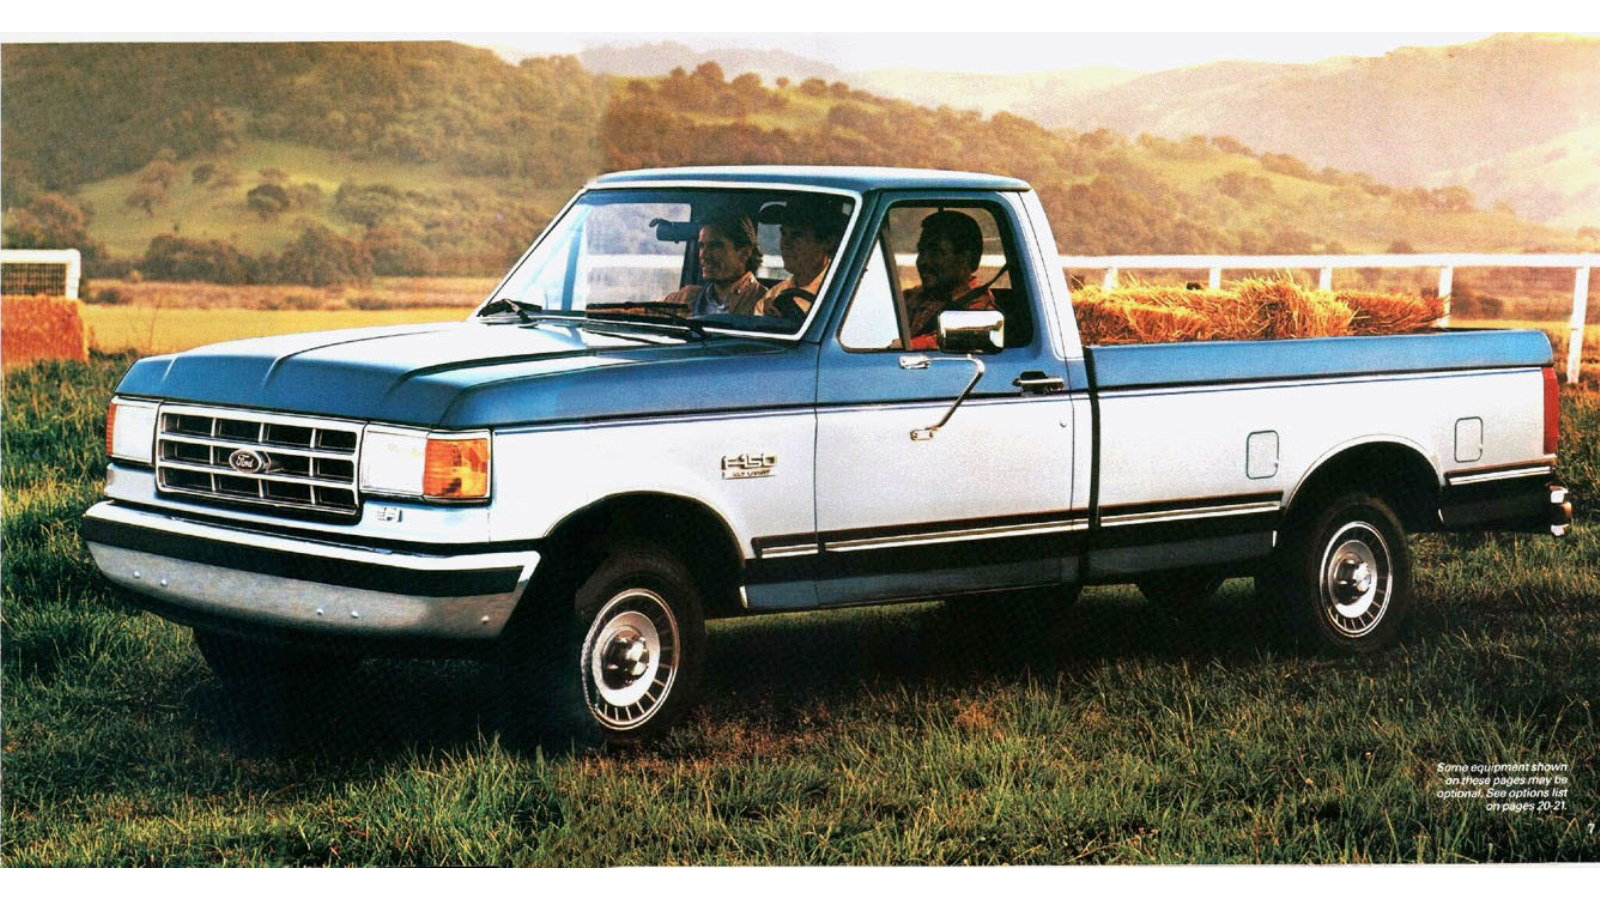 1987 Ford F-150 (300ci/manual 4sd) - 17 city/21 highway